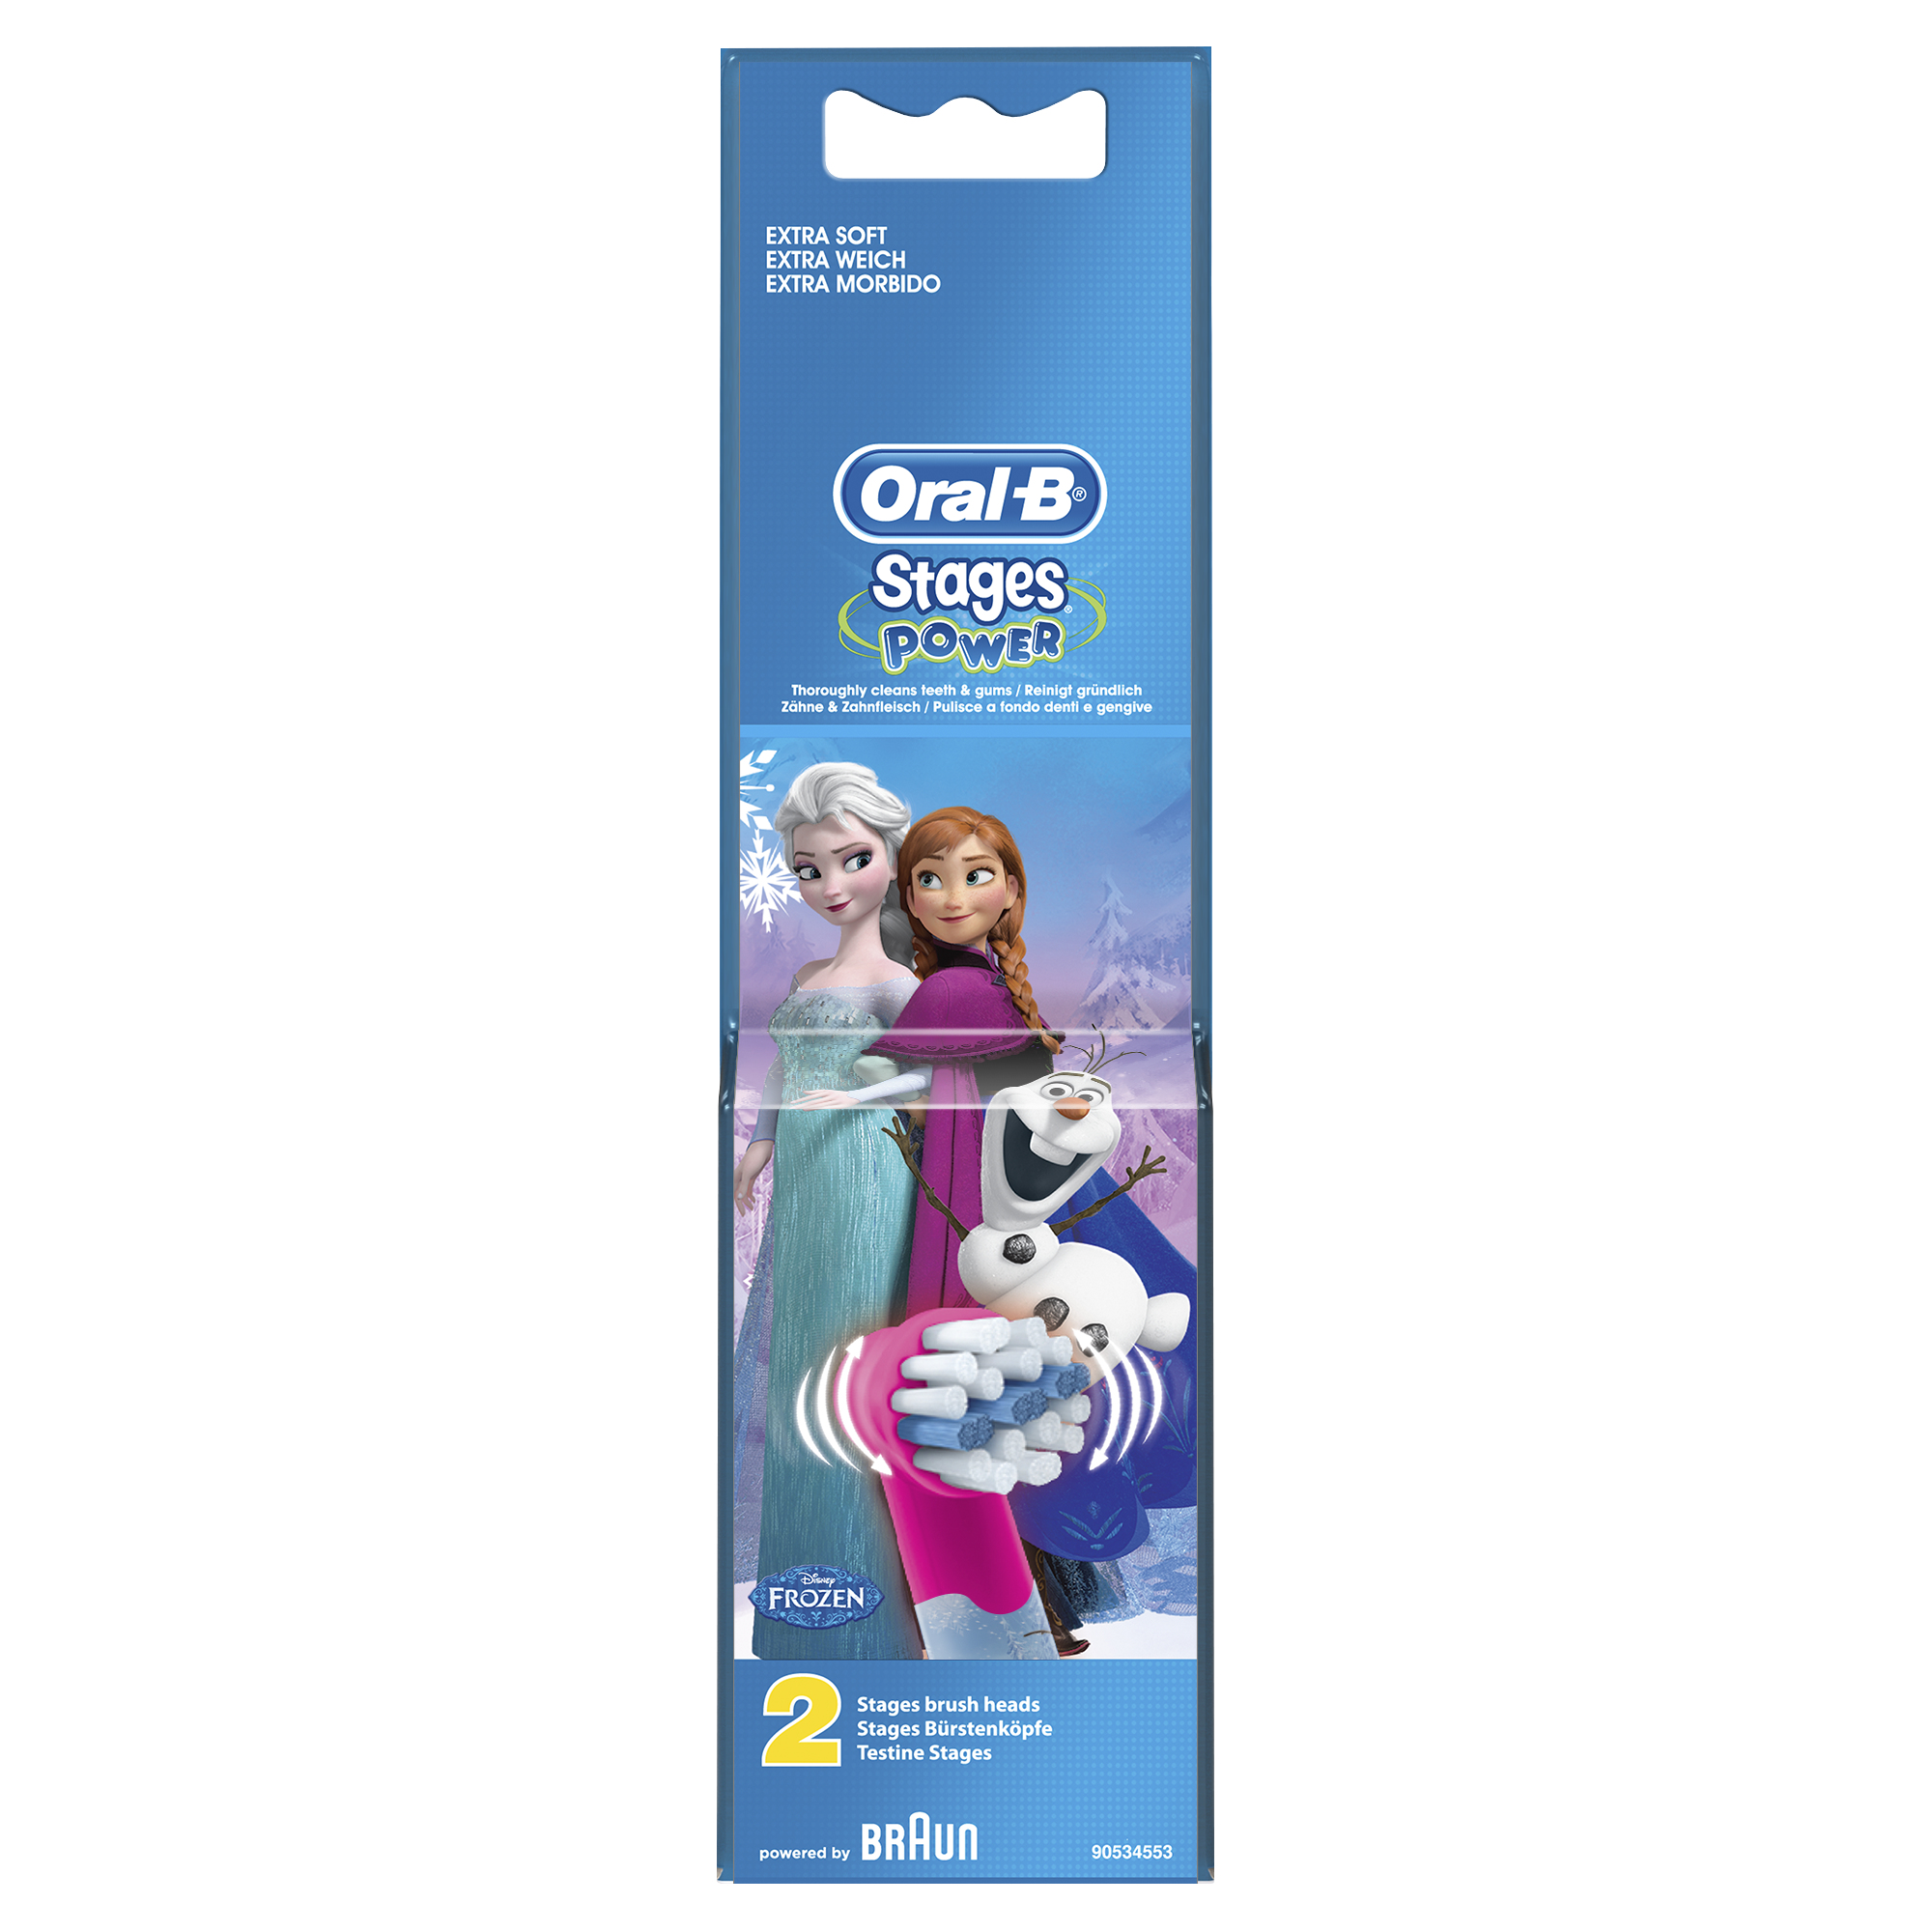 Braun Oral-B Toothbrush heads Stages Power  FROZEN     2 Pack